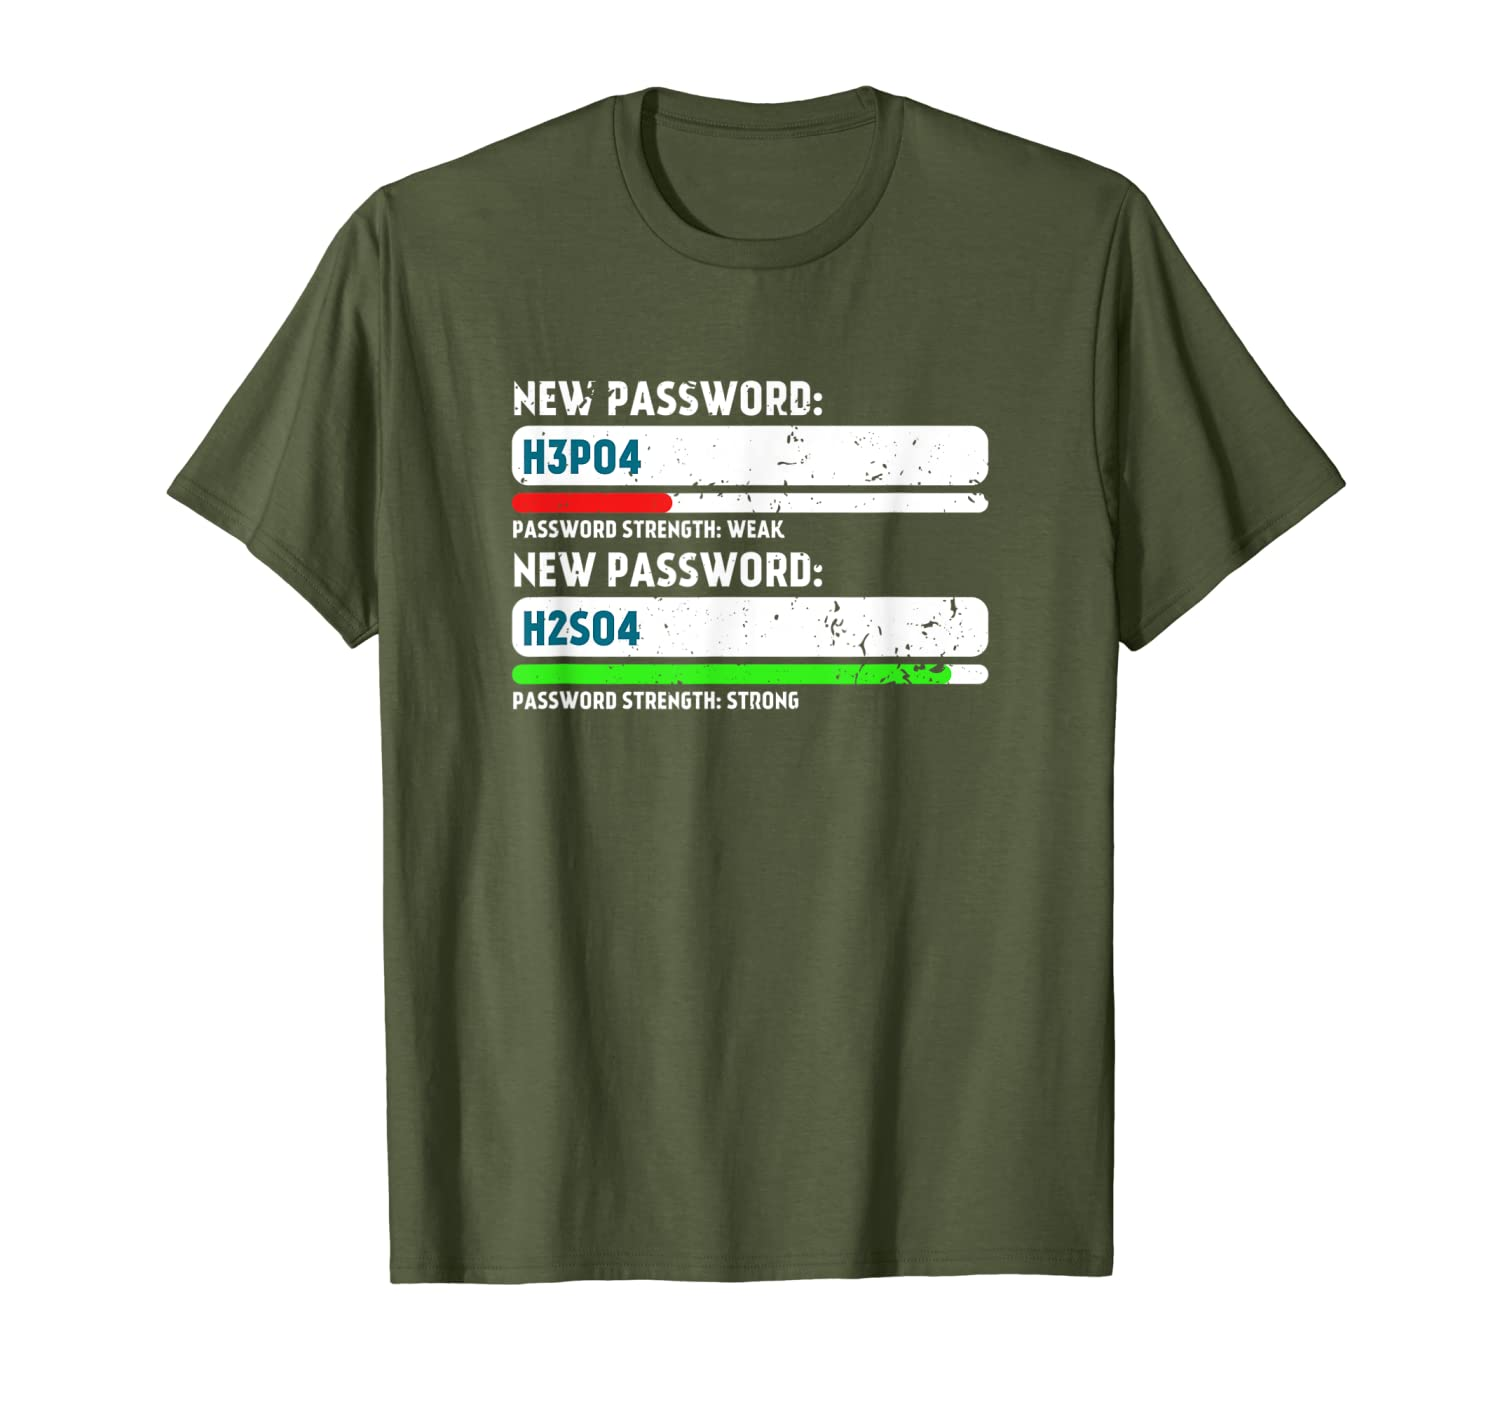 New Password H3PO4 Funny Science Pun Gift T-Shirt